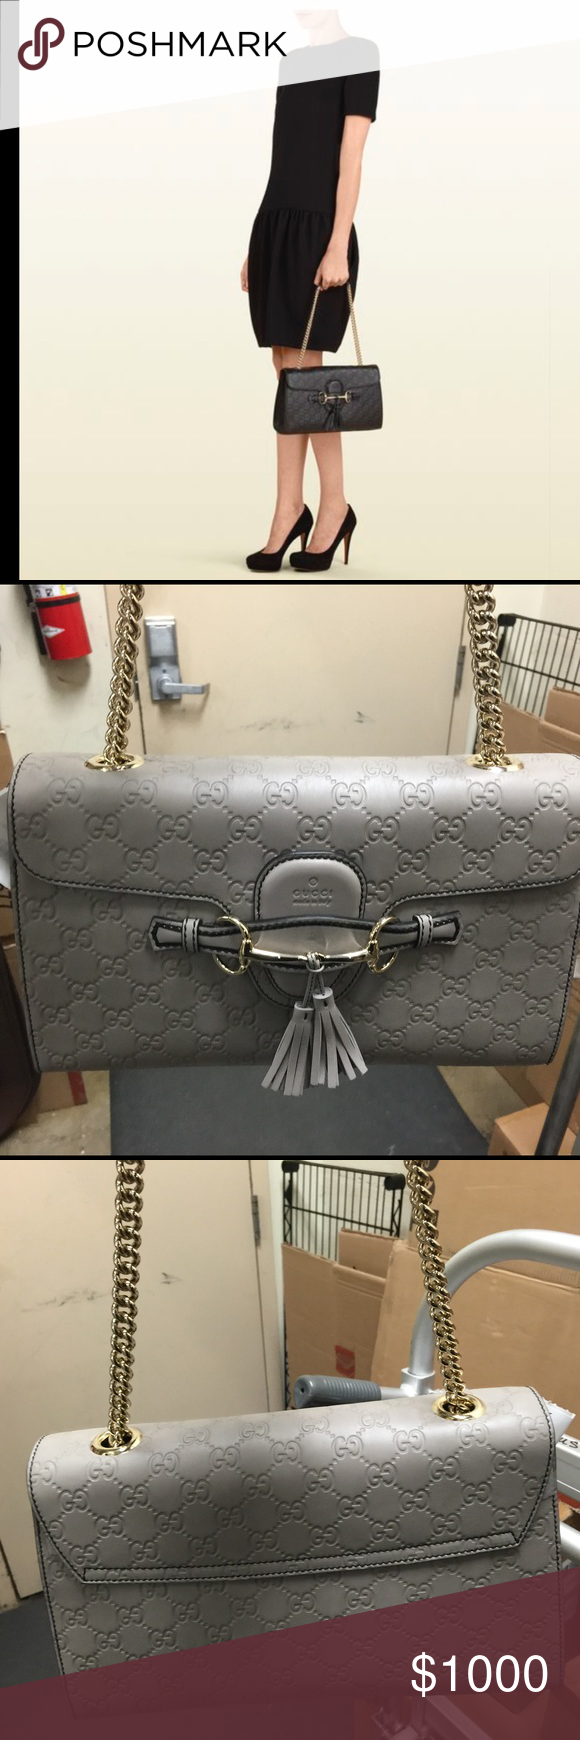 6c4dd3432e0 Gucci Emily Guccissima Leather Flap handbag Gucci Emily Leather Flap  Shoulder Handbag in Storm Grey.. bag has never been carried includes  original tag dust ...